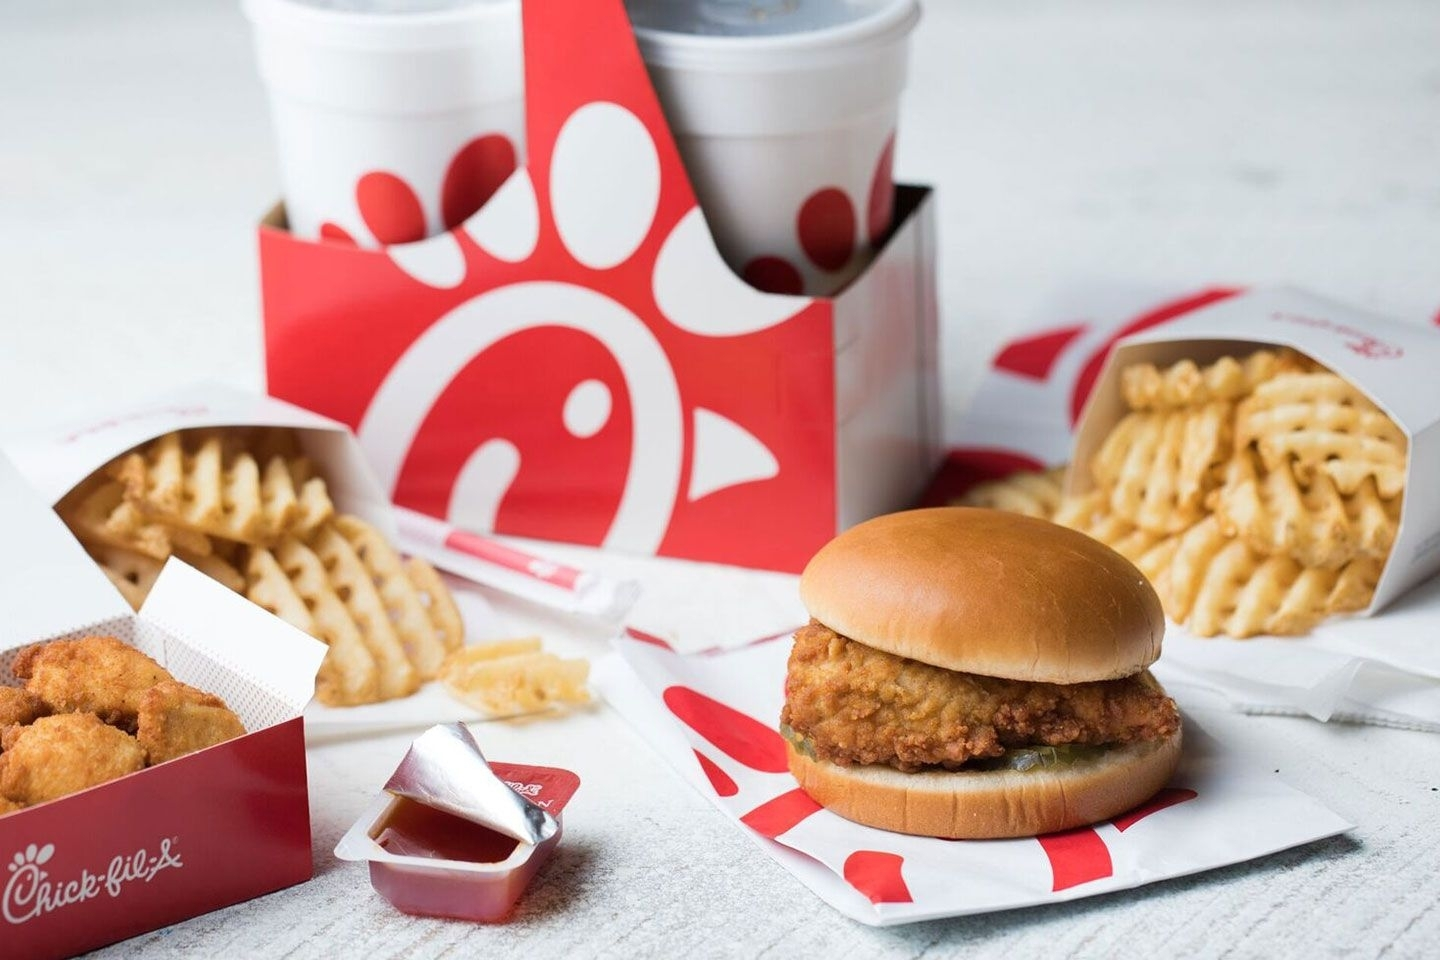 Chick-Fil-A Announces Nationwide Delivery Service, Partners